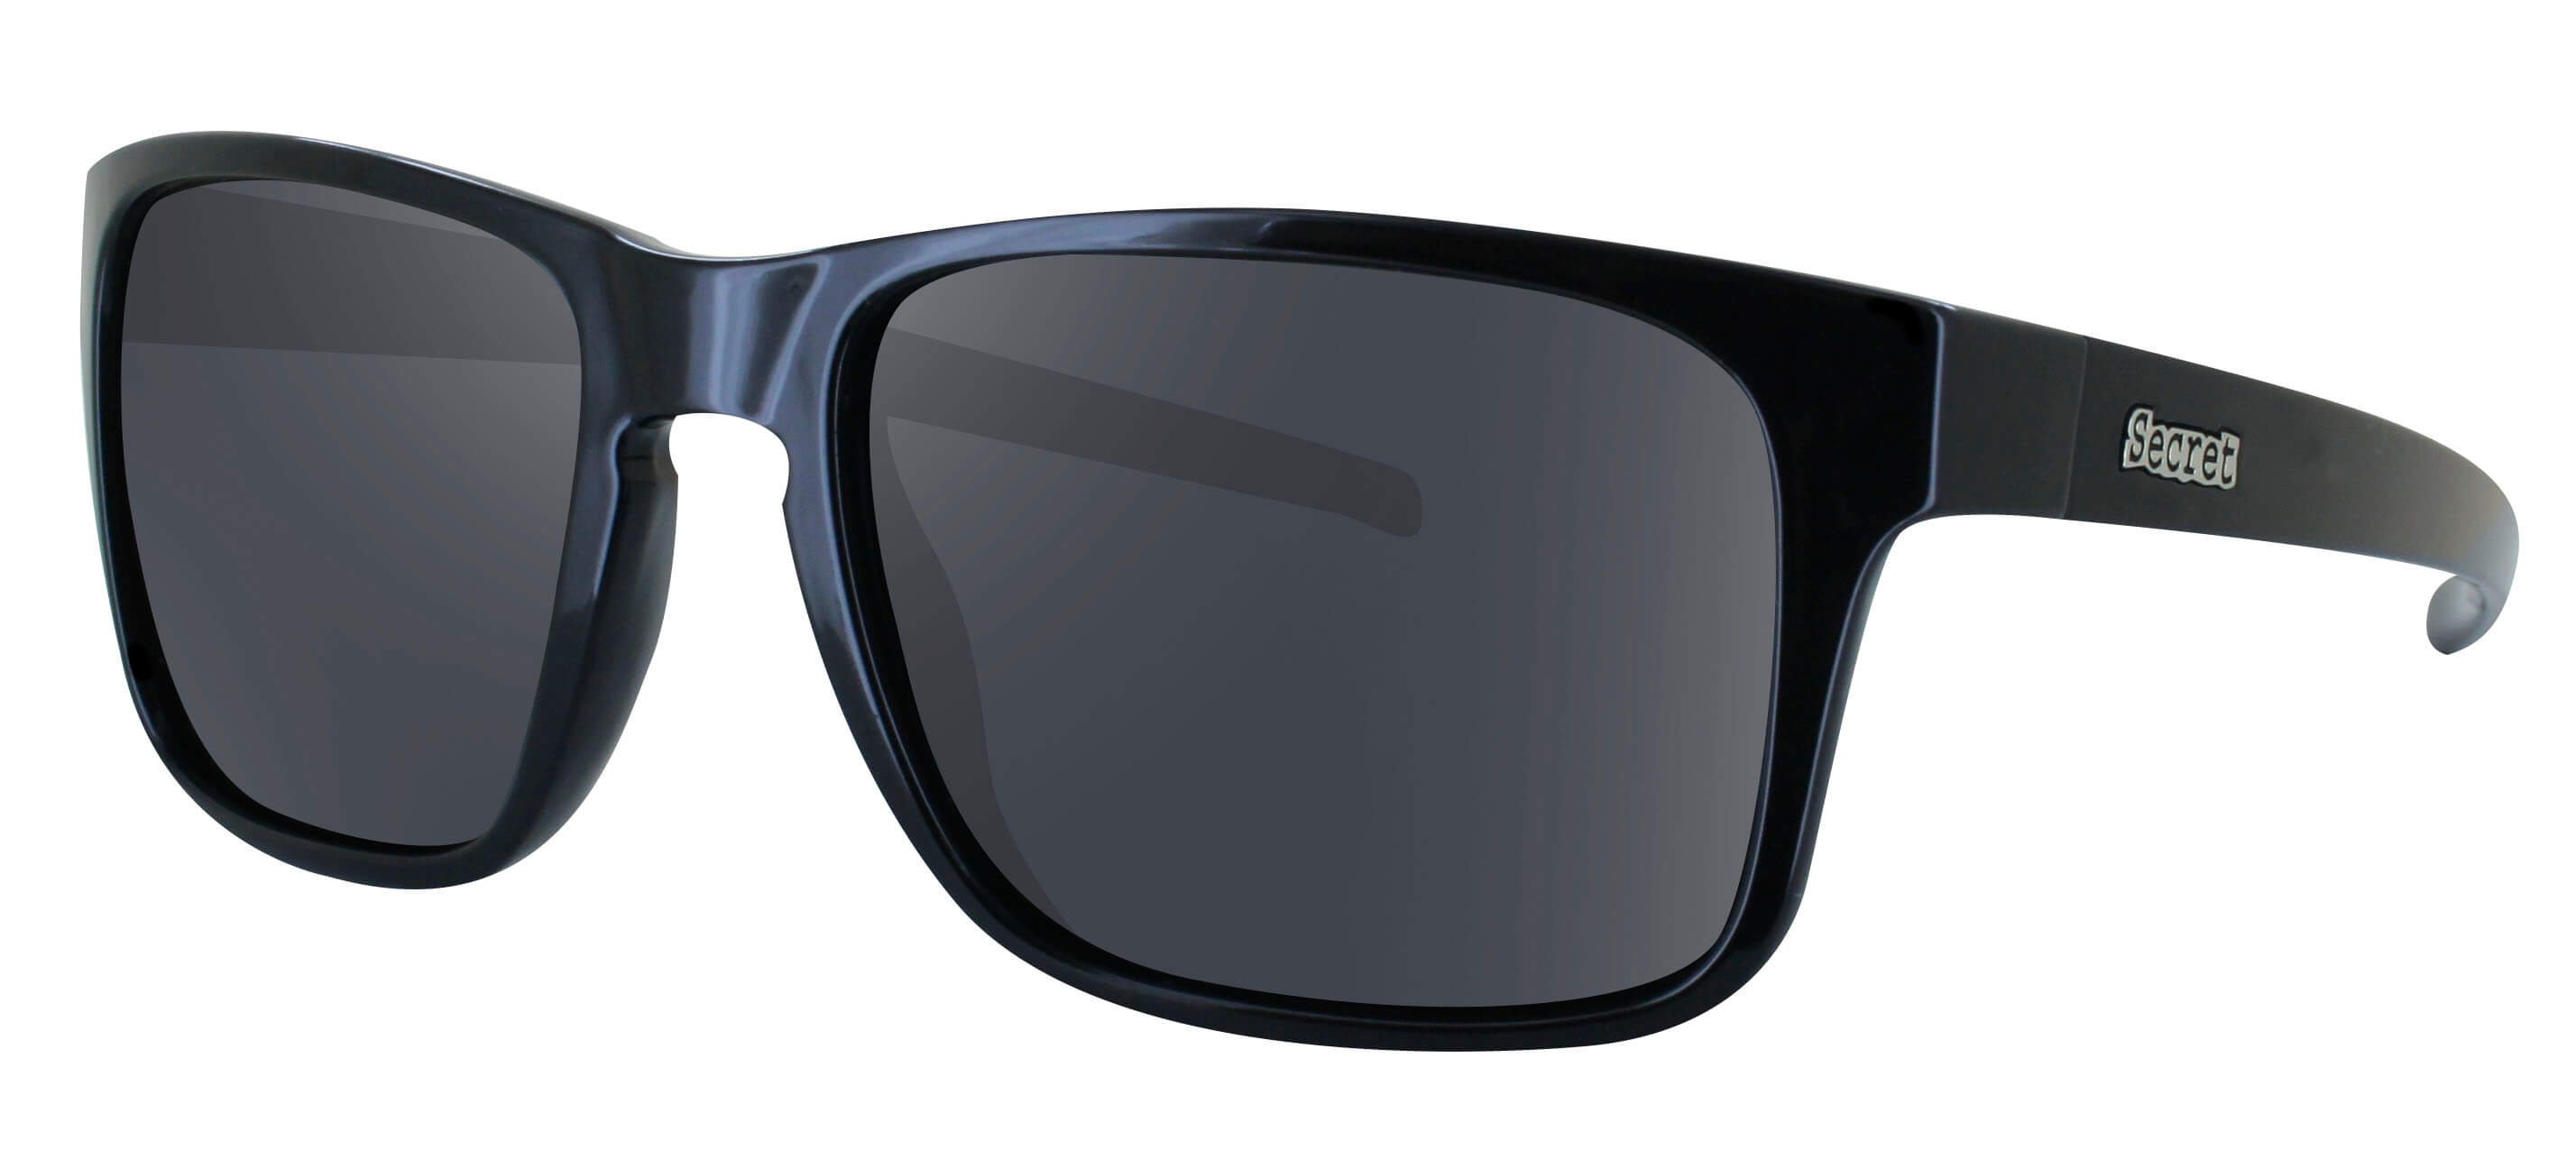 ÓC SECRET MOTLEY MATTE BLACK / POLARIZED GRAY